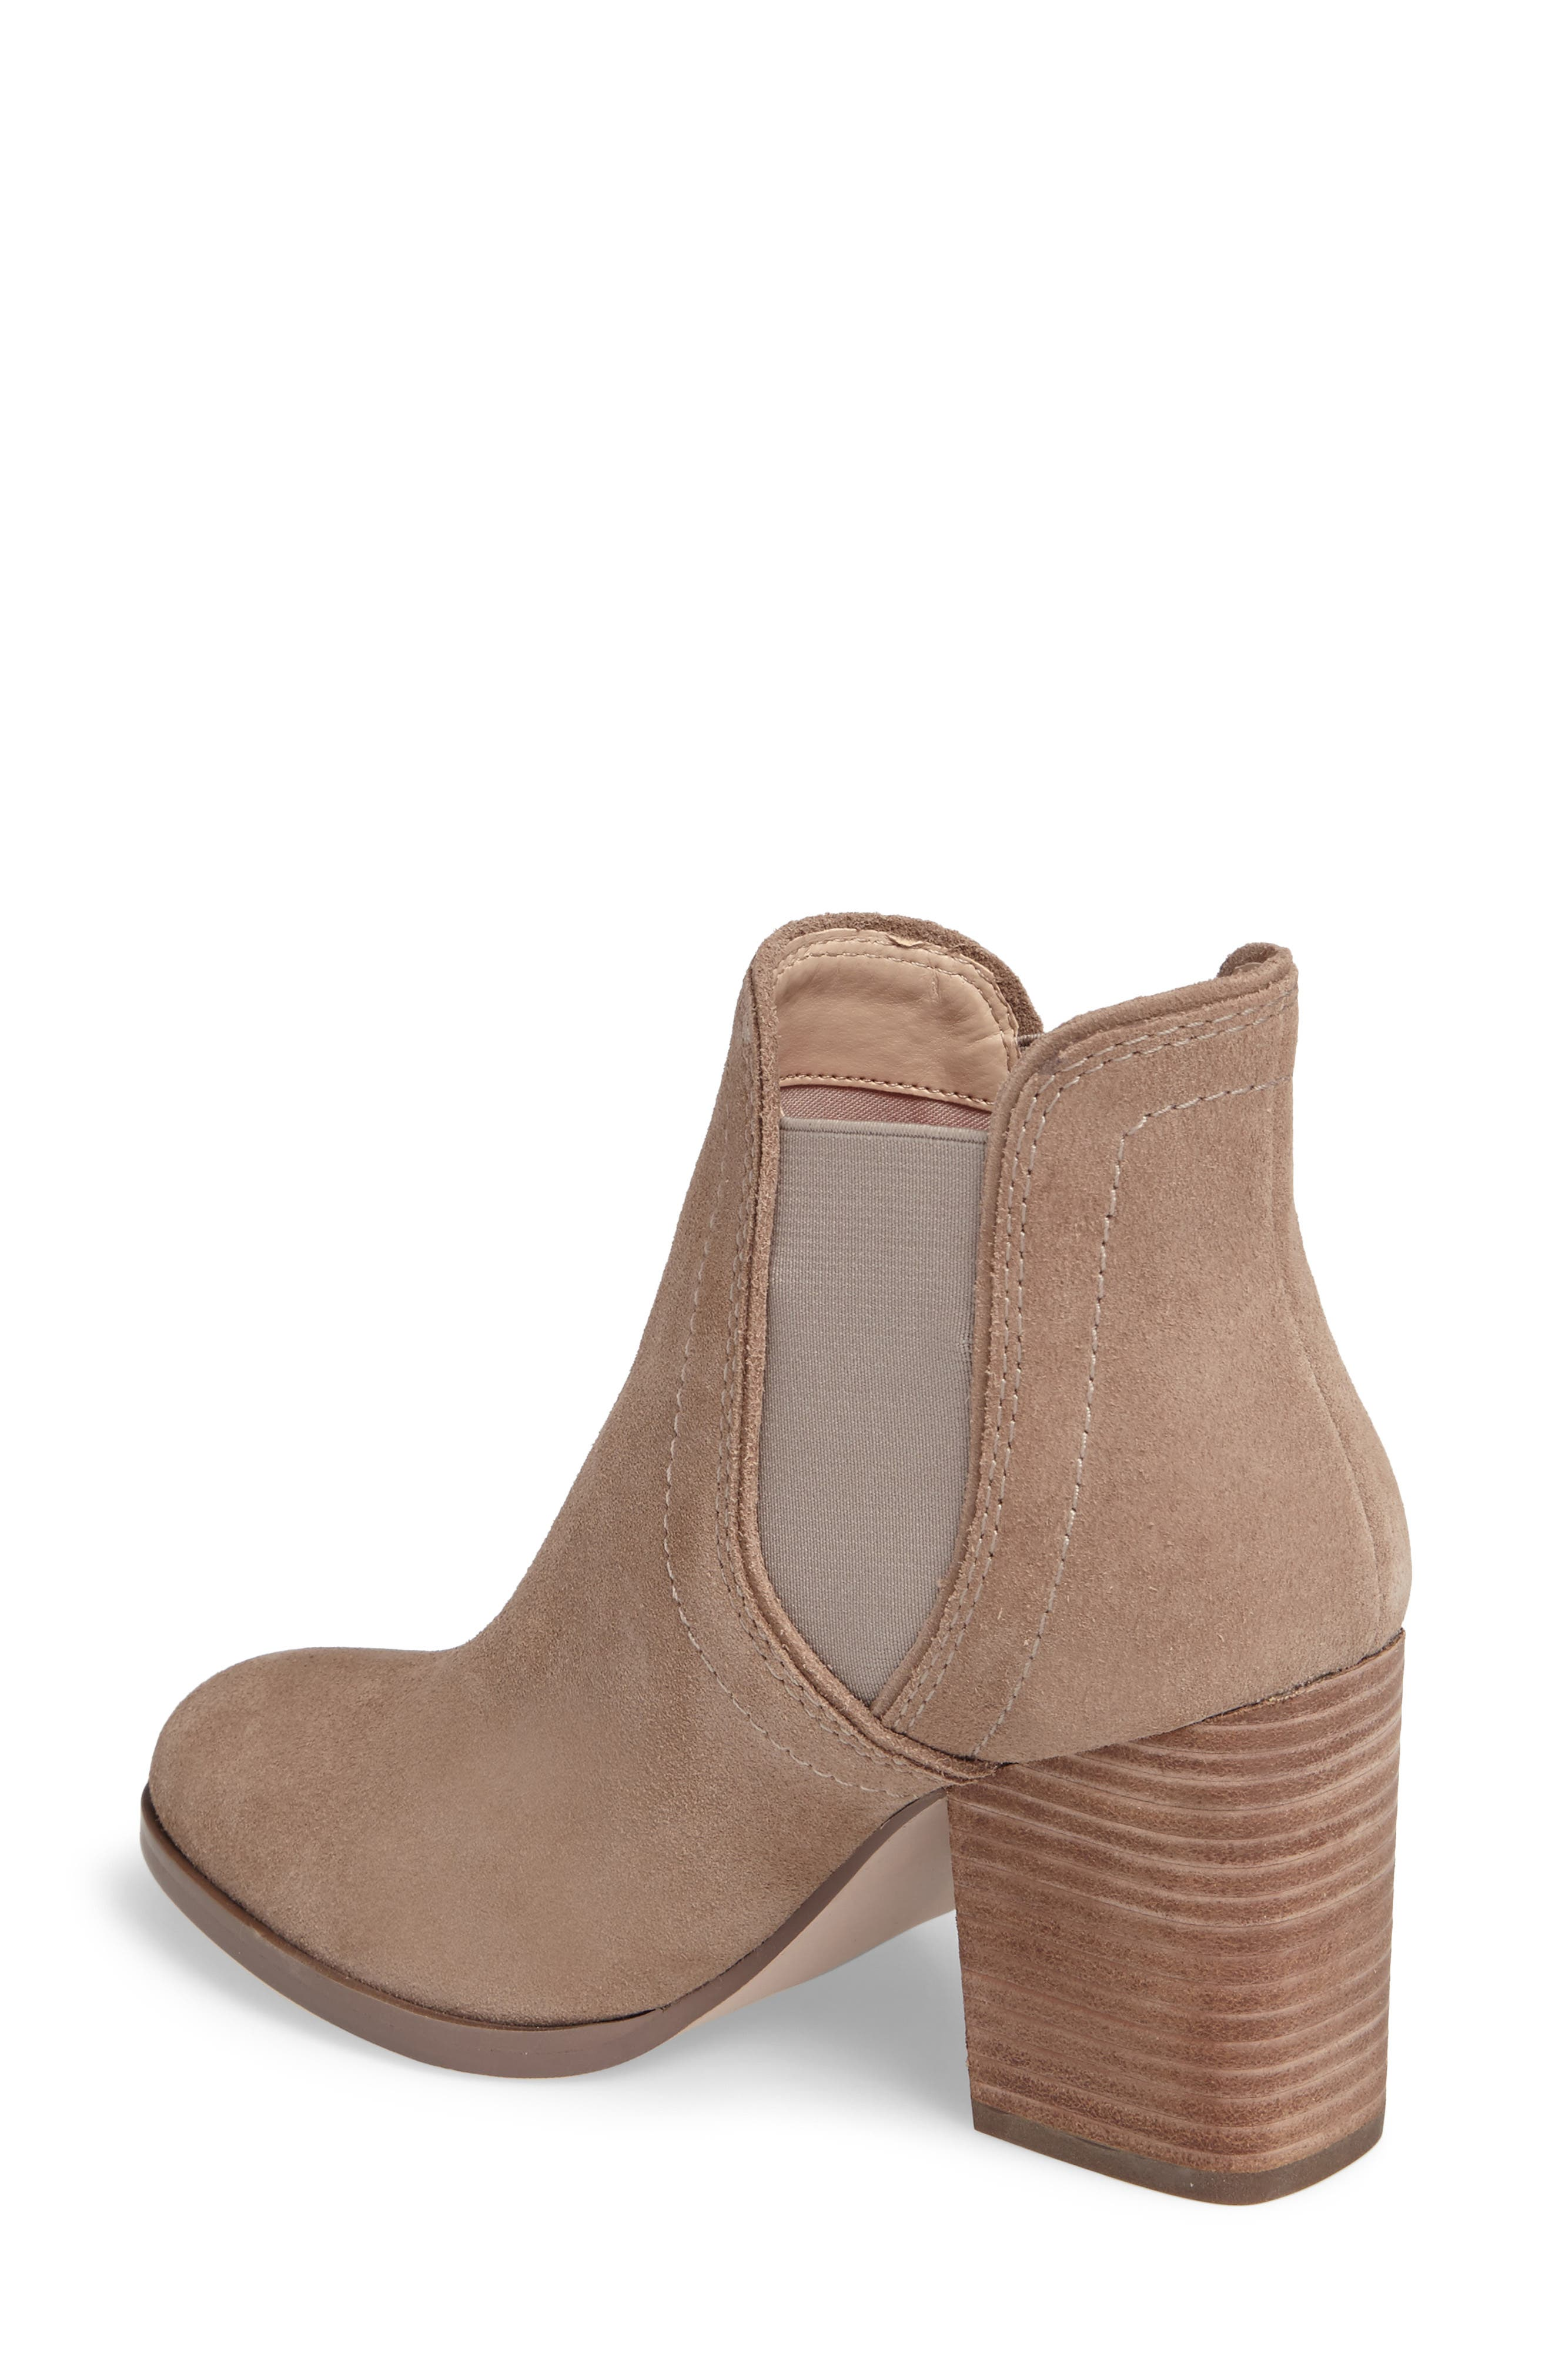 Carrillo Bootie,                             Alternate thumbnail 2, color,                             Taupe